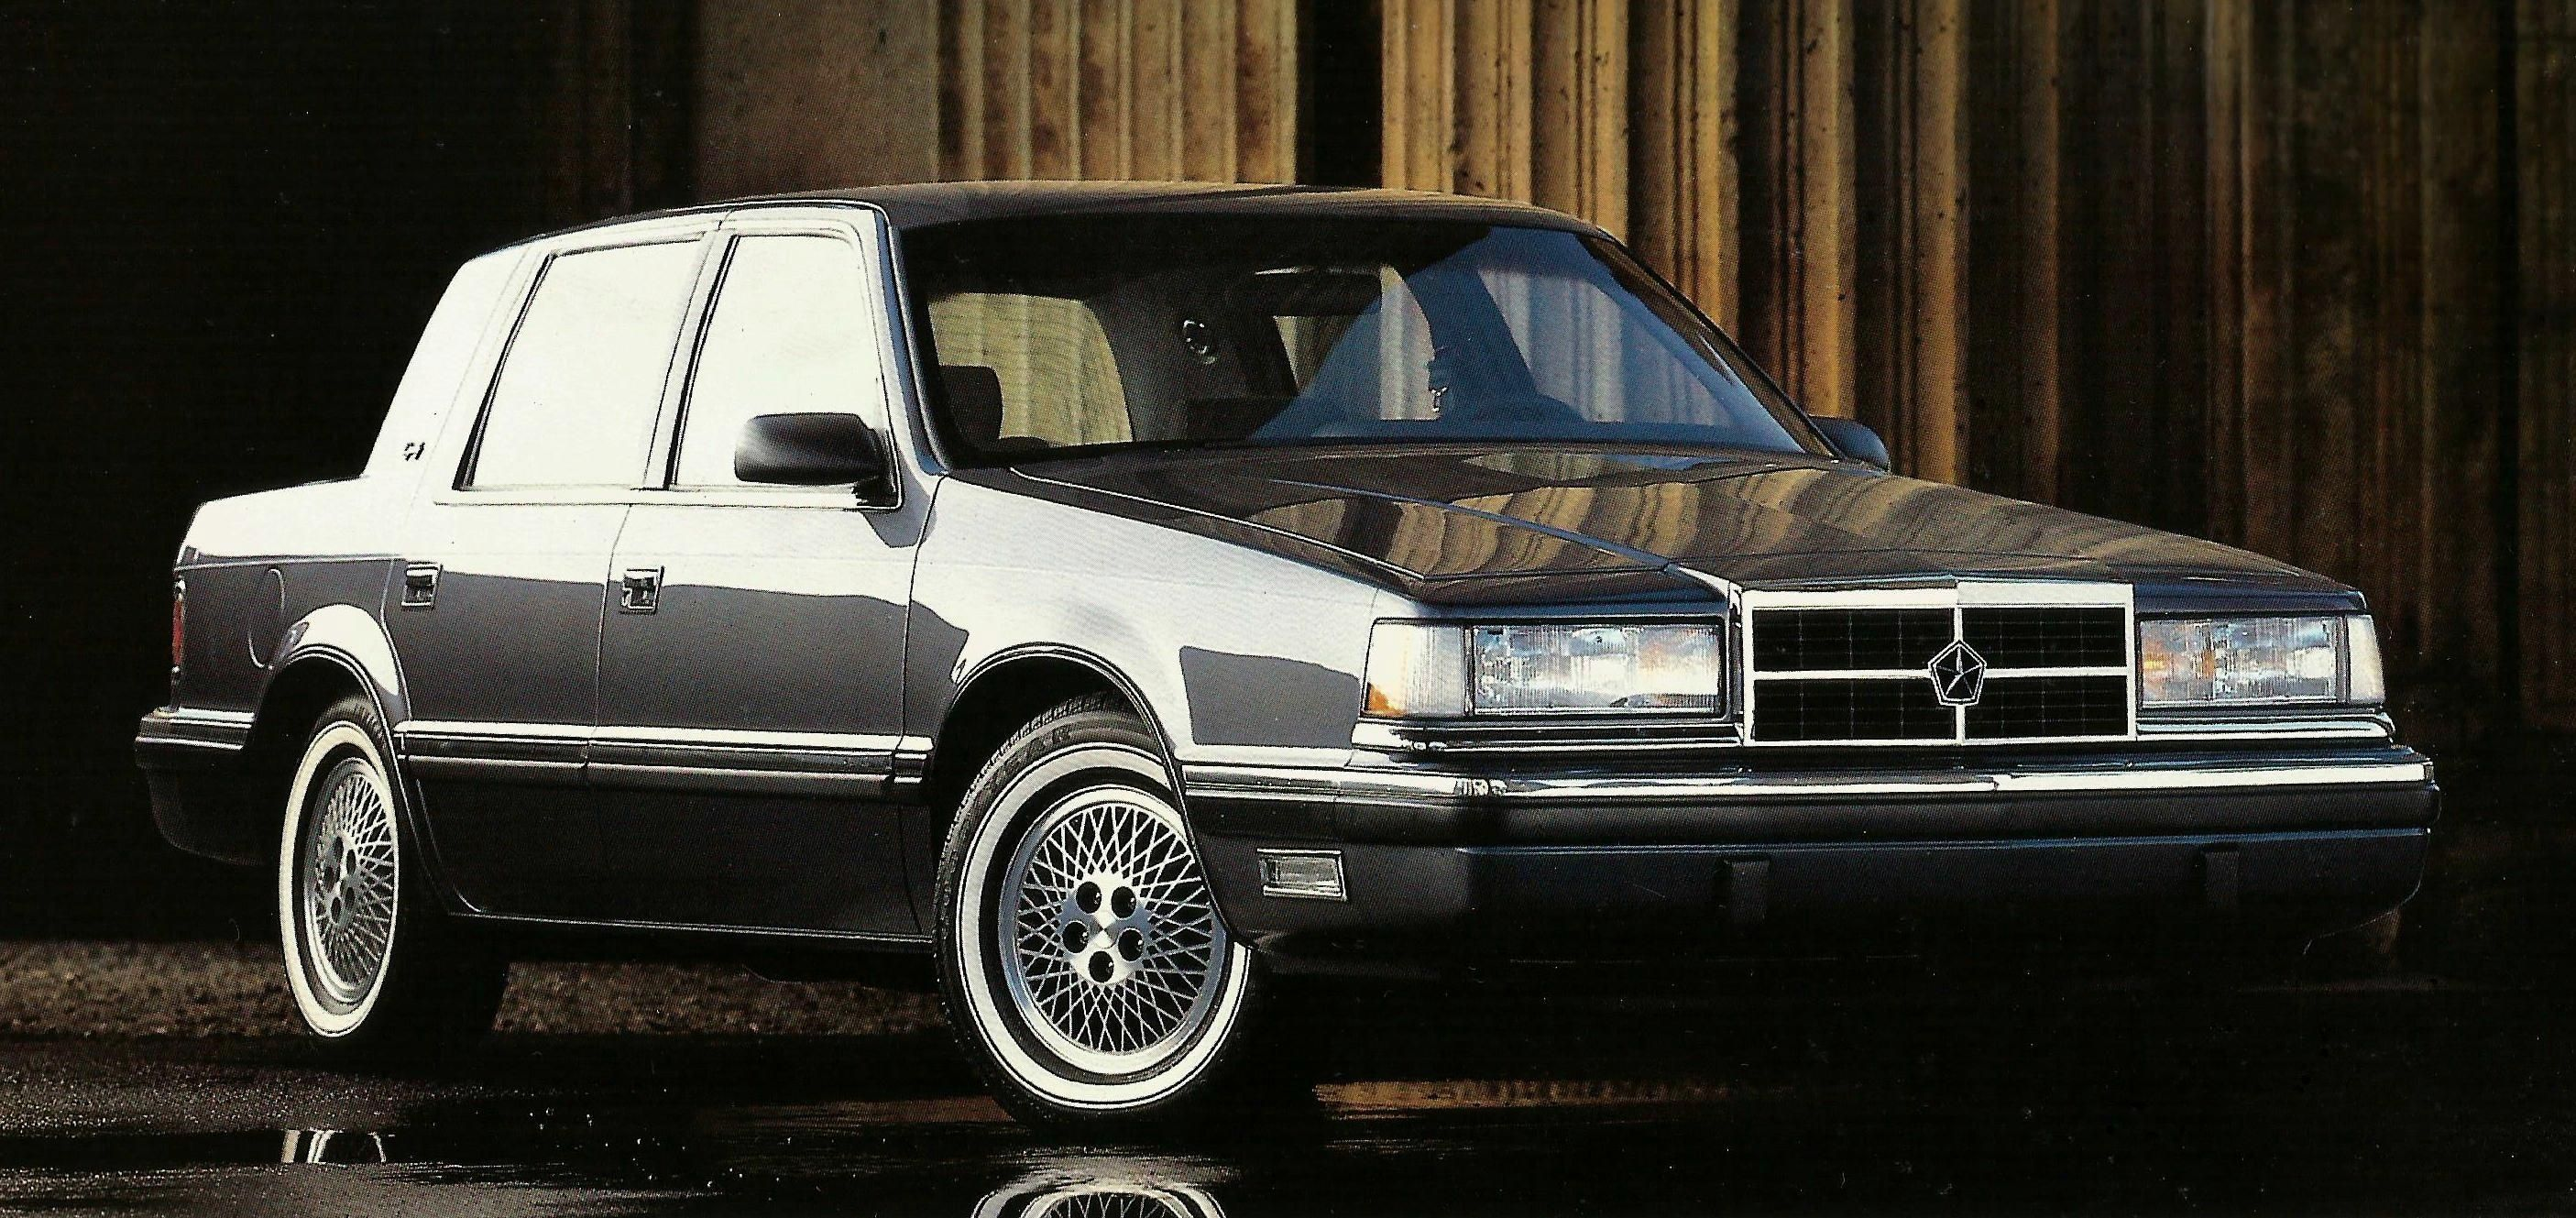 The 1989 Dodge Dynasty Chrysler Cars Dodge Car And Motorcycle Design